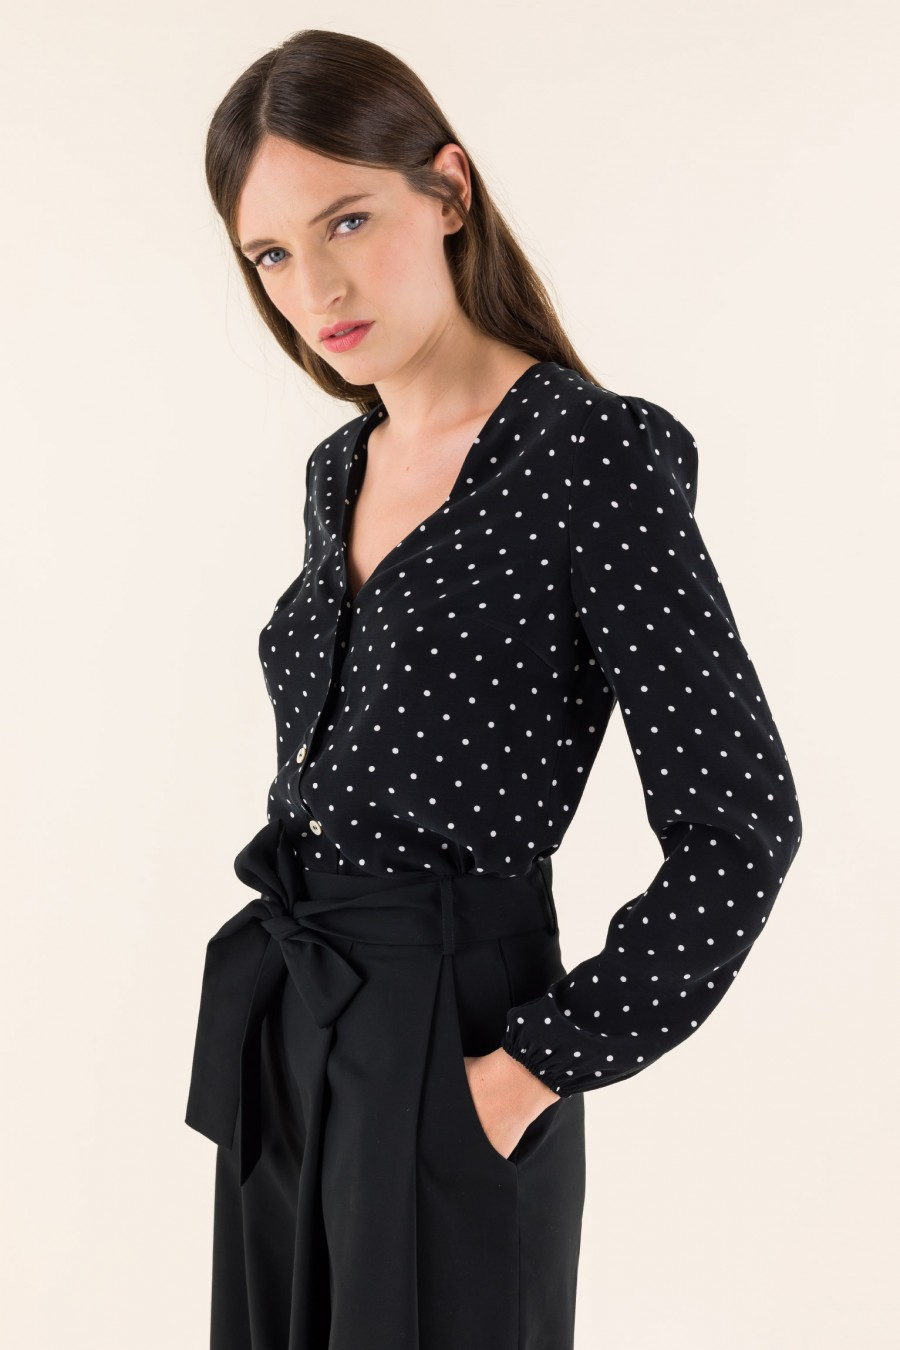 V-neck blouse with polka dots